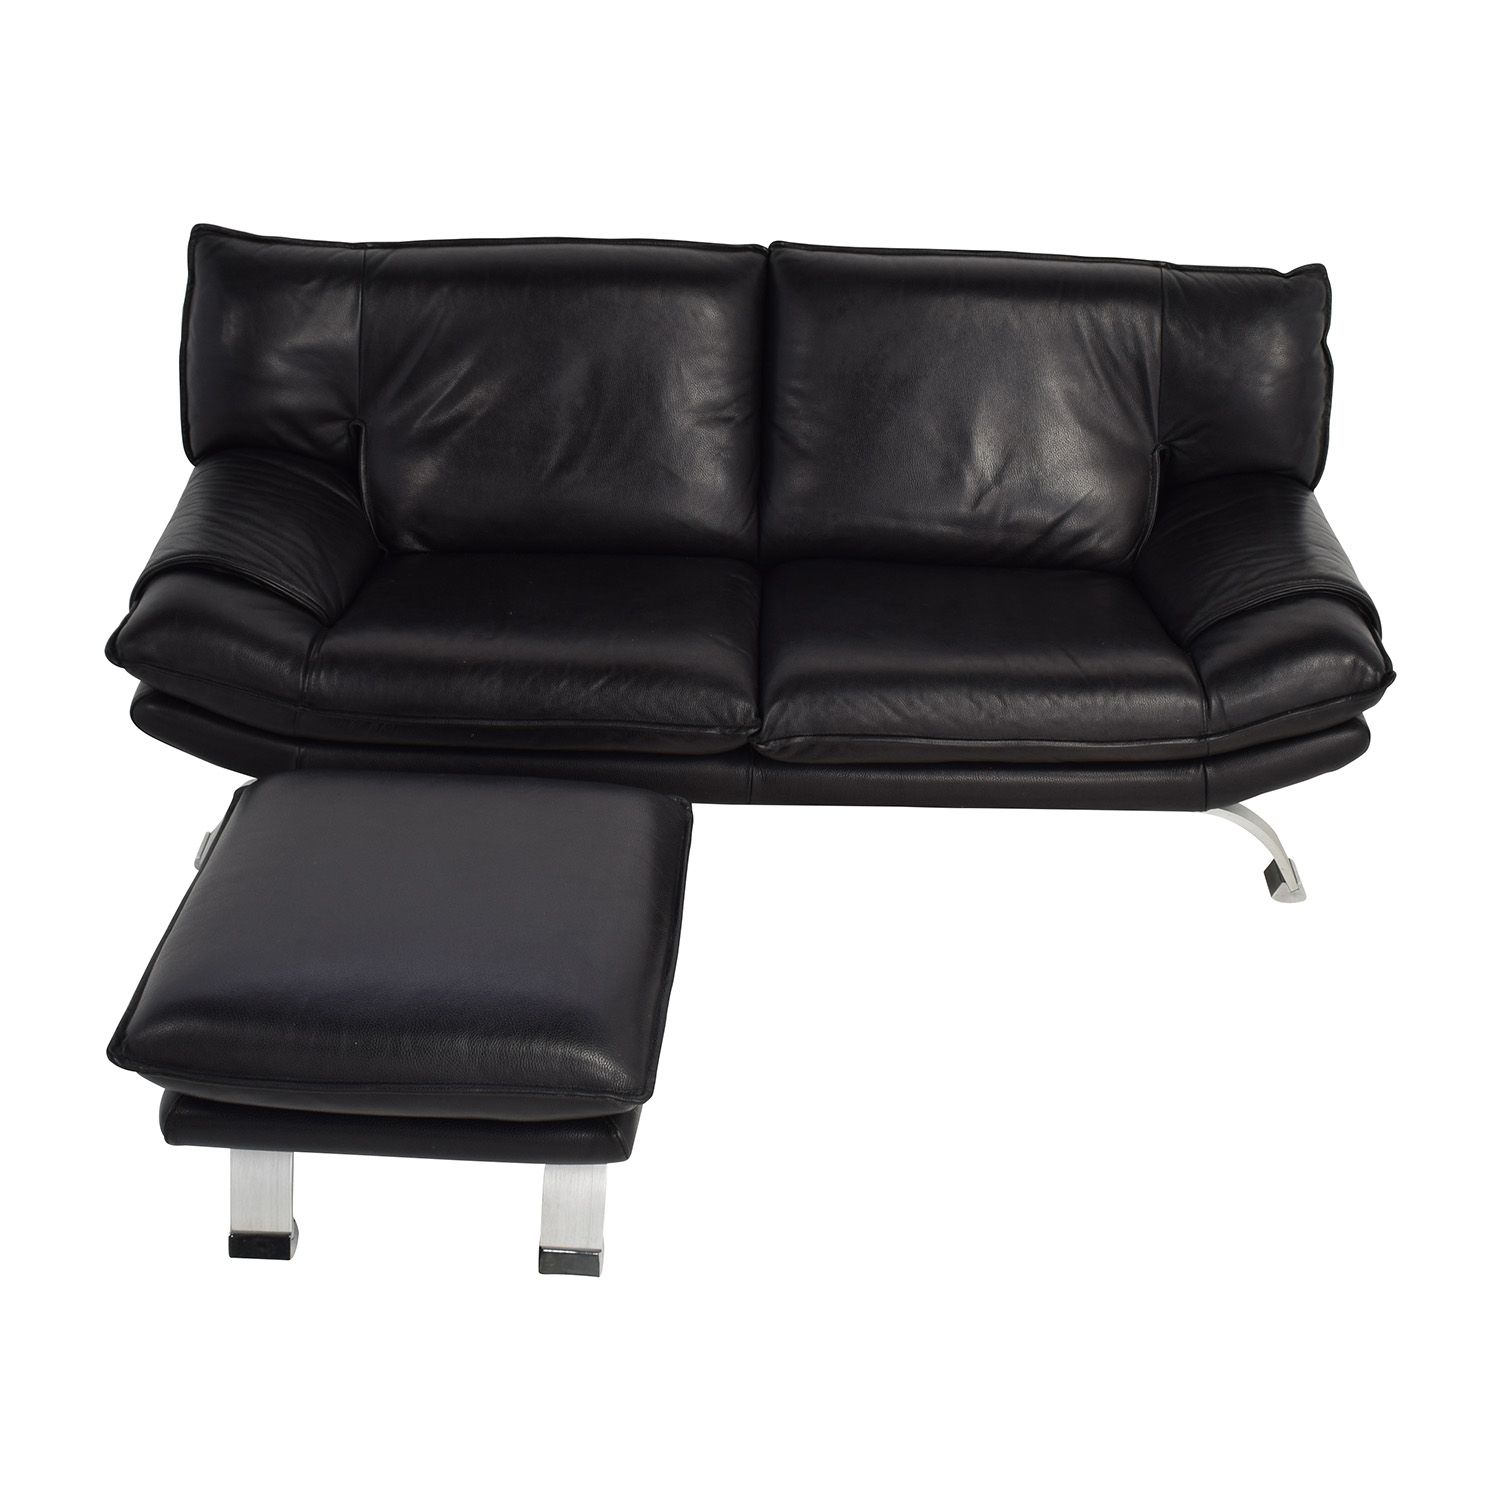 Nicolletti Nicolletti Black Leather Sofa and Ottoman dimensions